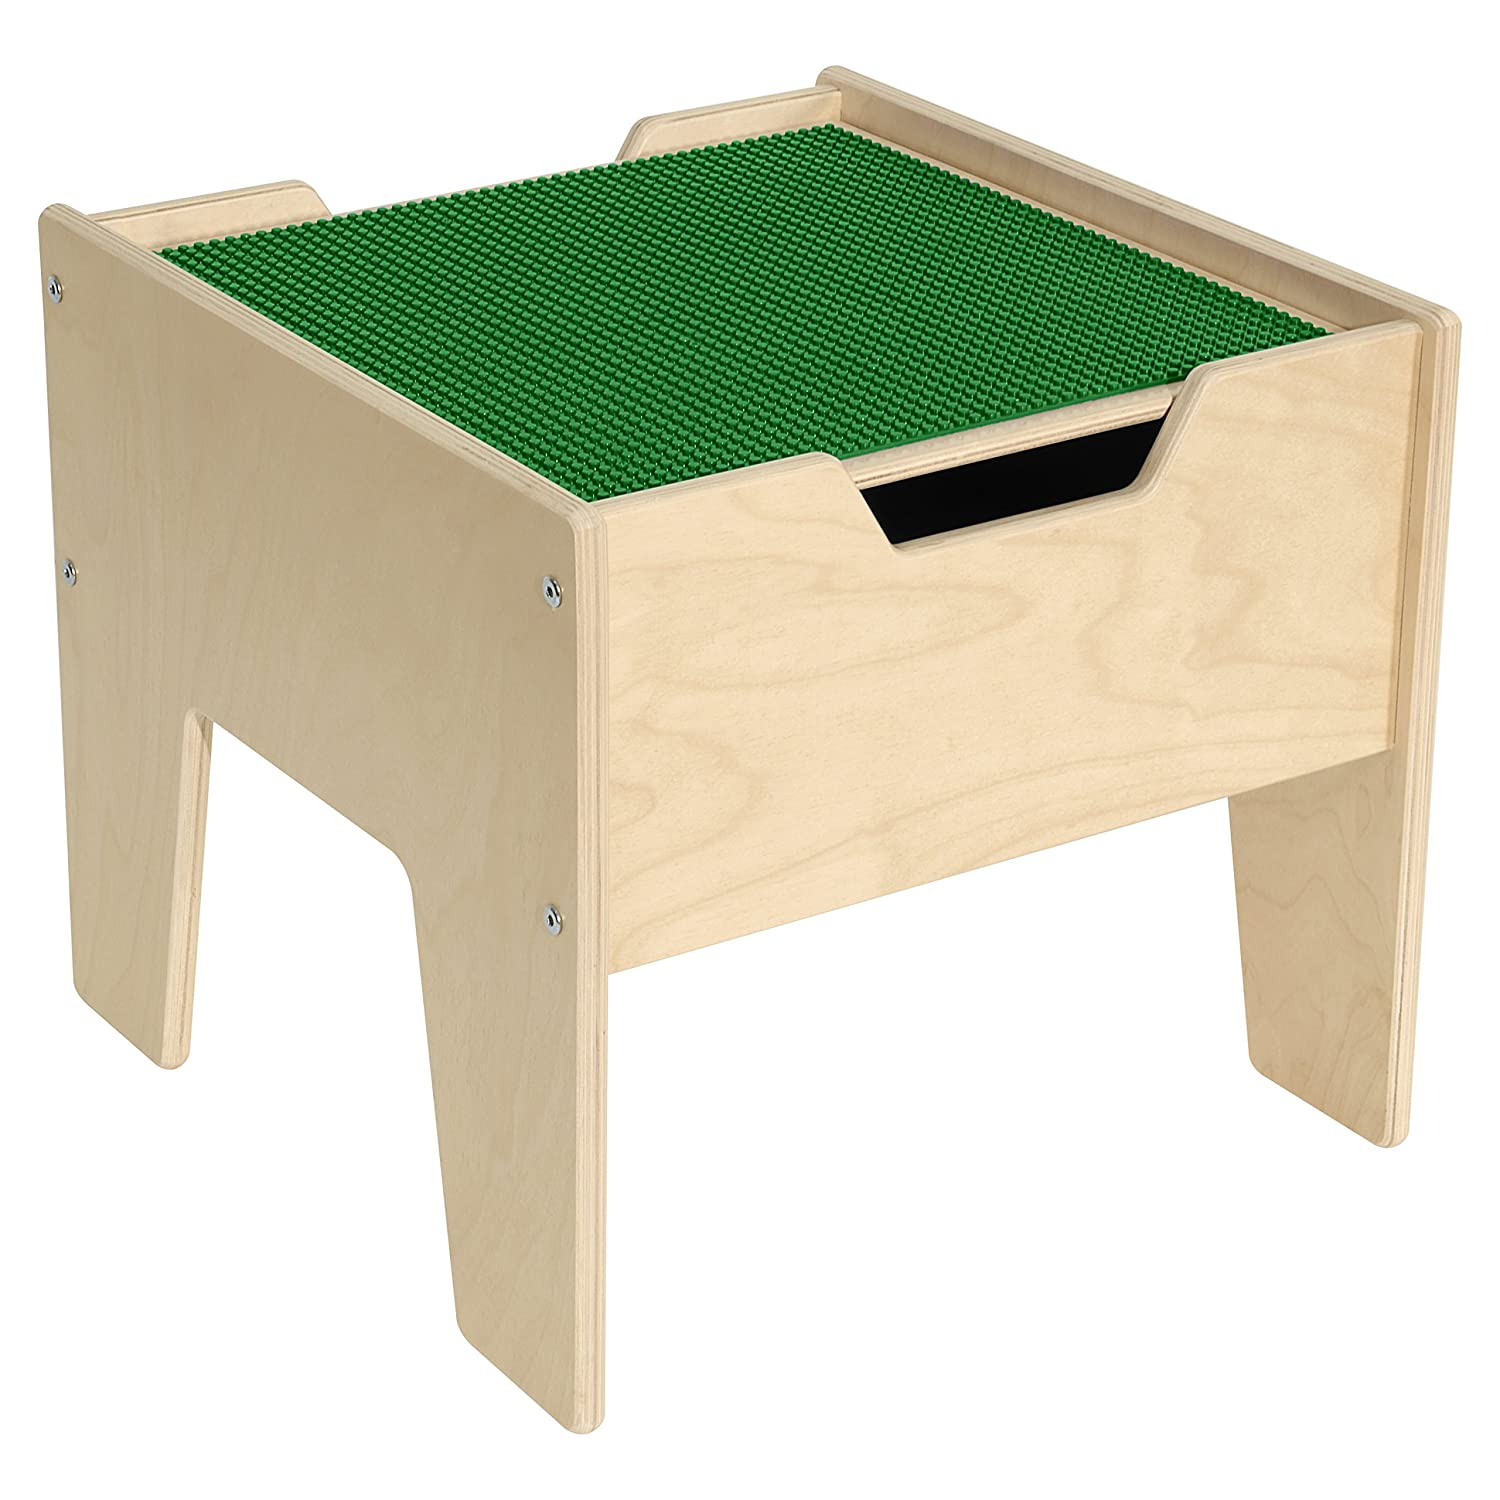 Image of Contender 2-N-1 Activity Table with Green Lego Compatible Top - RTA Building Sets